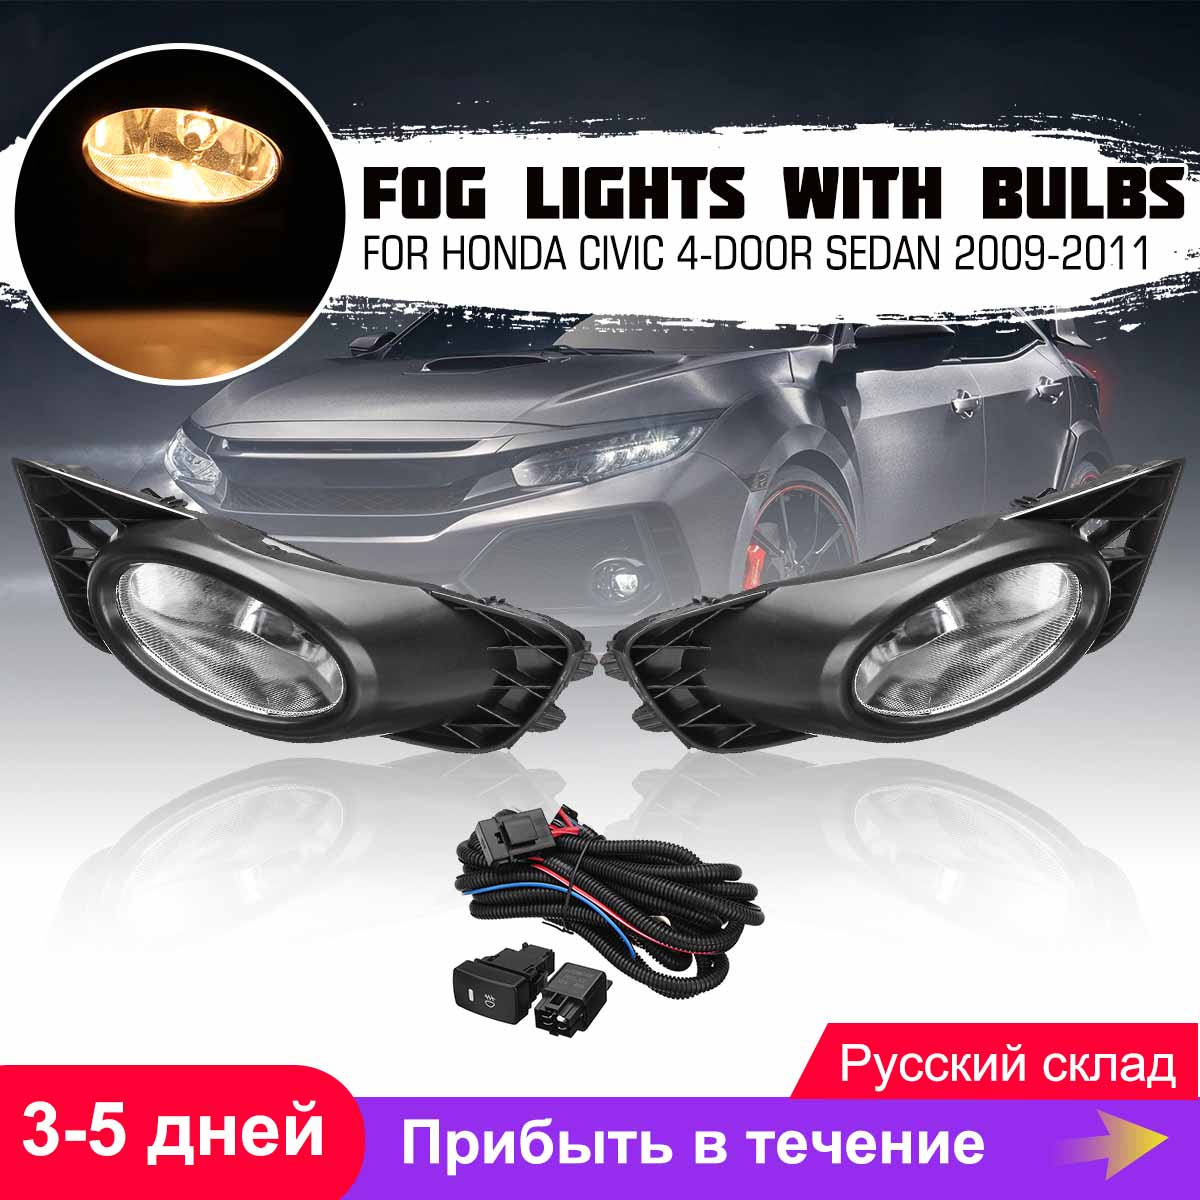 Pair 12V H11 Bumper Grille Driving Led Fog Lights w/ Harness Replacements for Honda for Civic 4Door Sedan 2009 2010 2011 55W